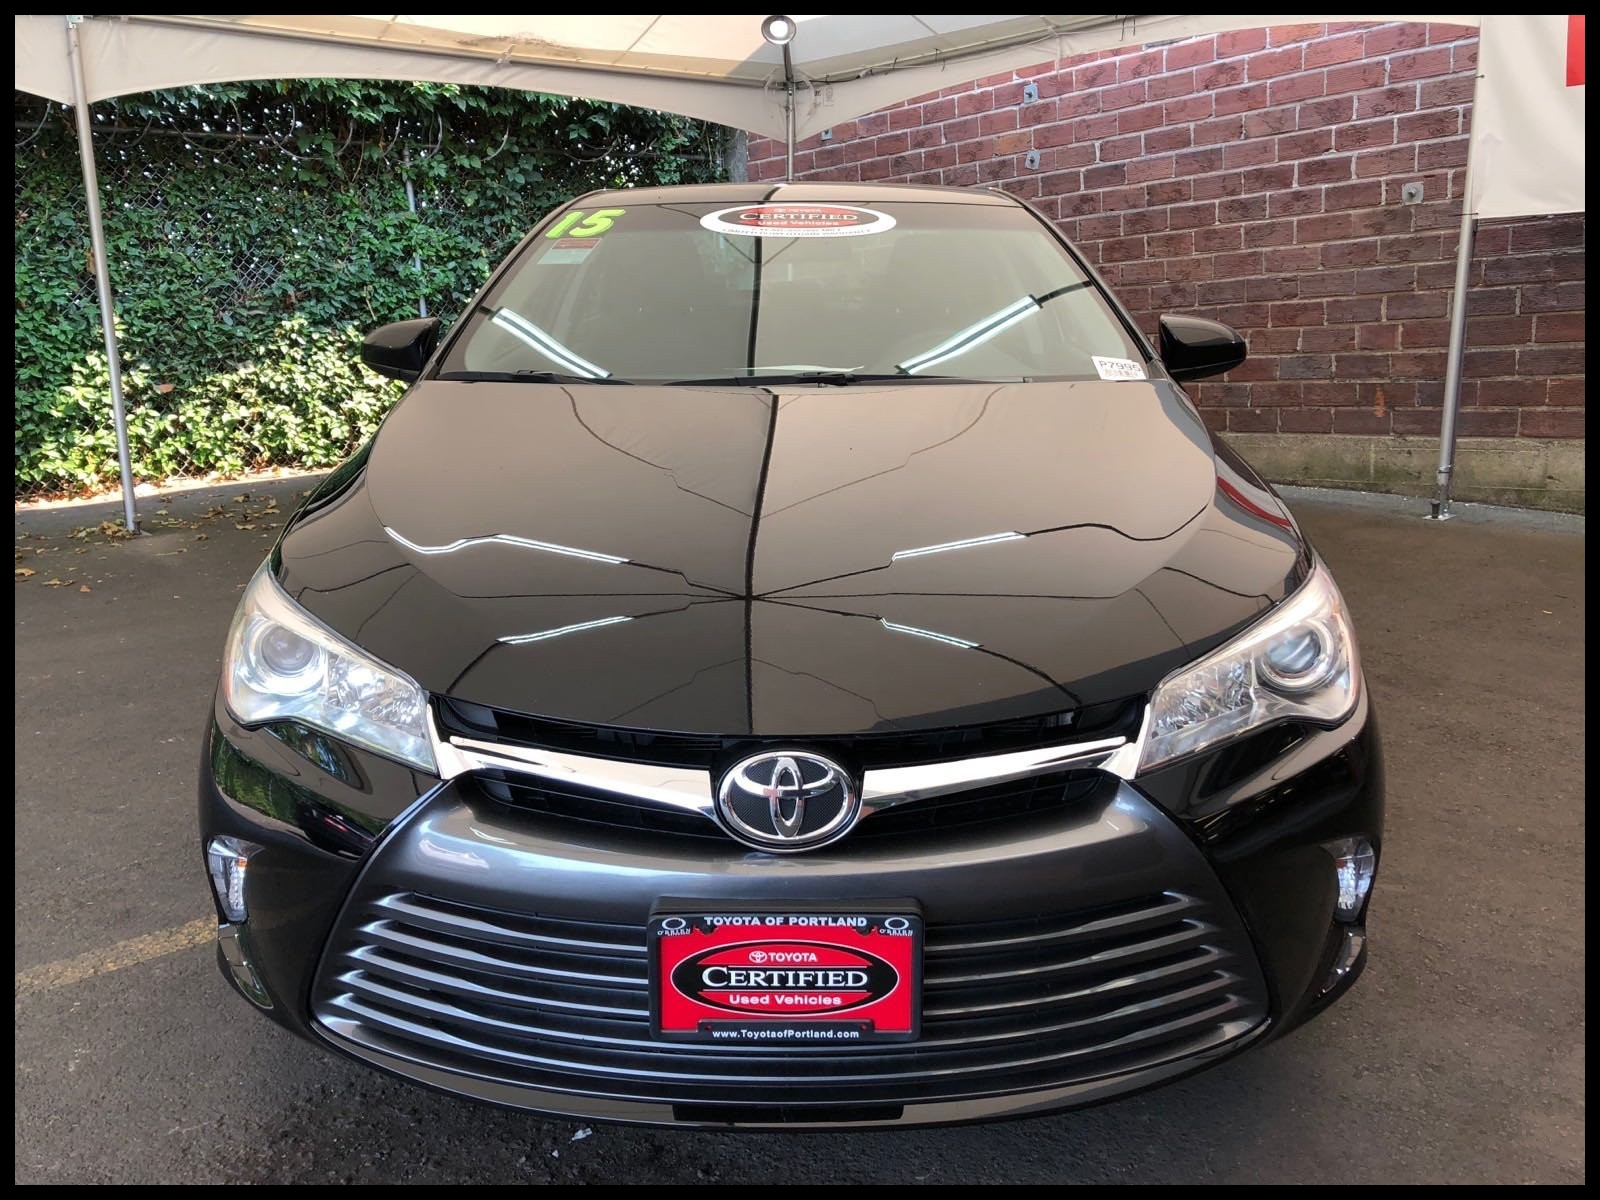 Beaverton toyota Used Cars Luxury Pre Owned 2015 toyota Camry Le 4dr Car In Portland P7995